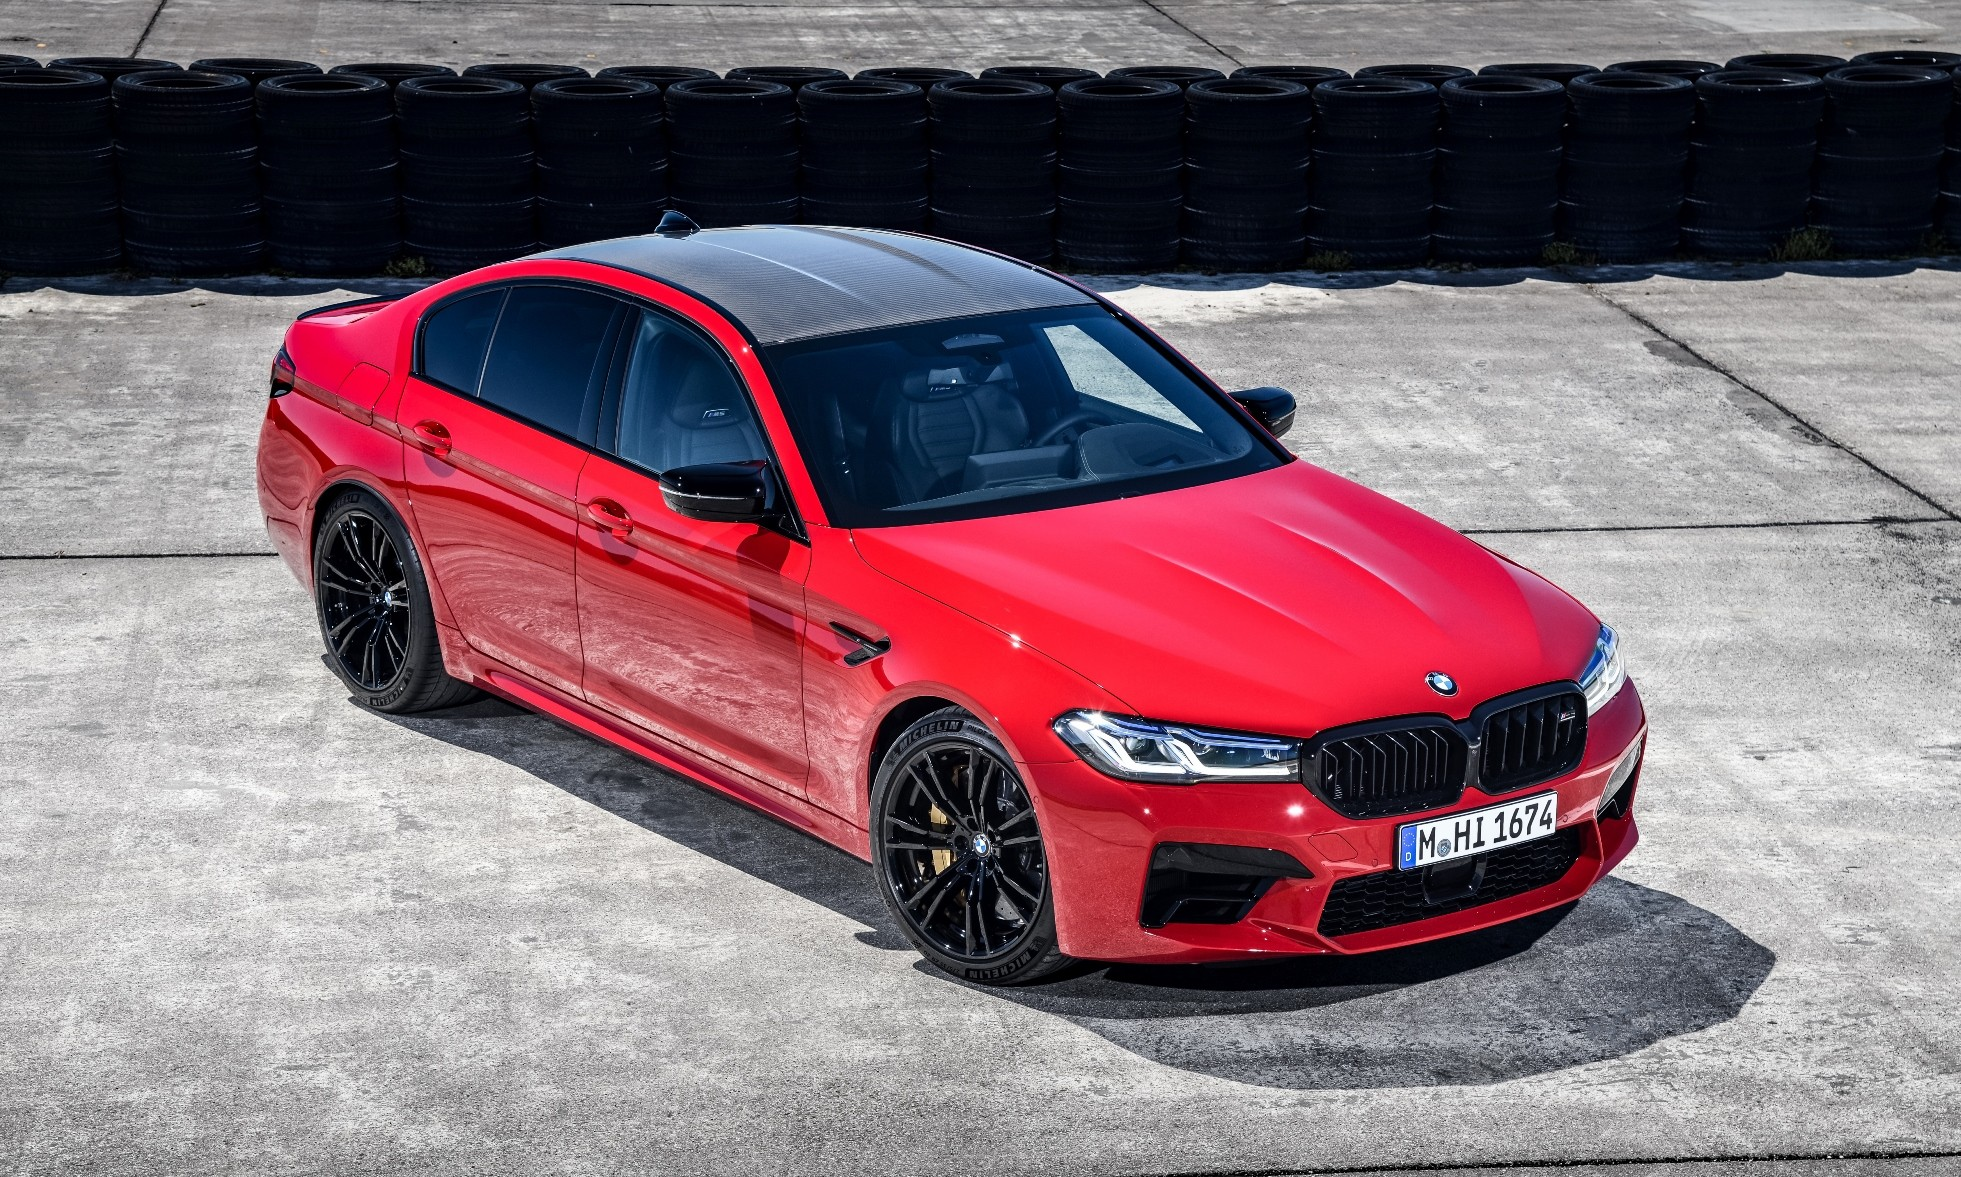 Facelifted BMW M5